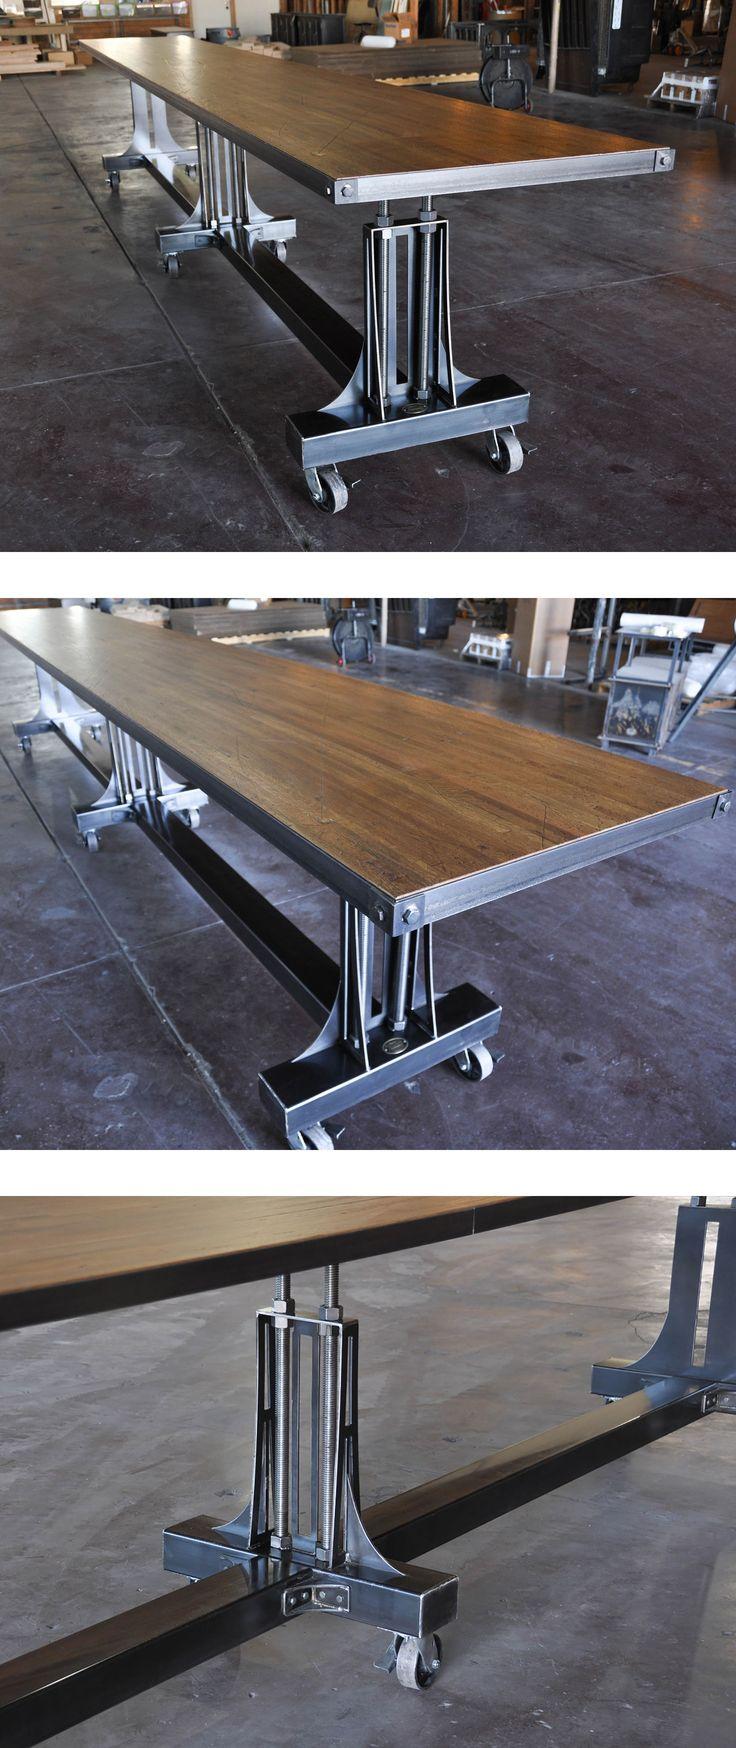 Hure conference table with faux crank vintage industrial furniture - Find This Pin And More On Vintage Industrial Conference Tables Boardroom Design